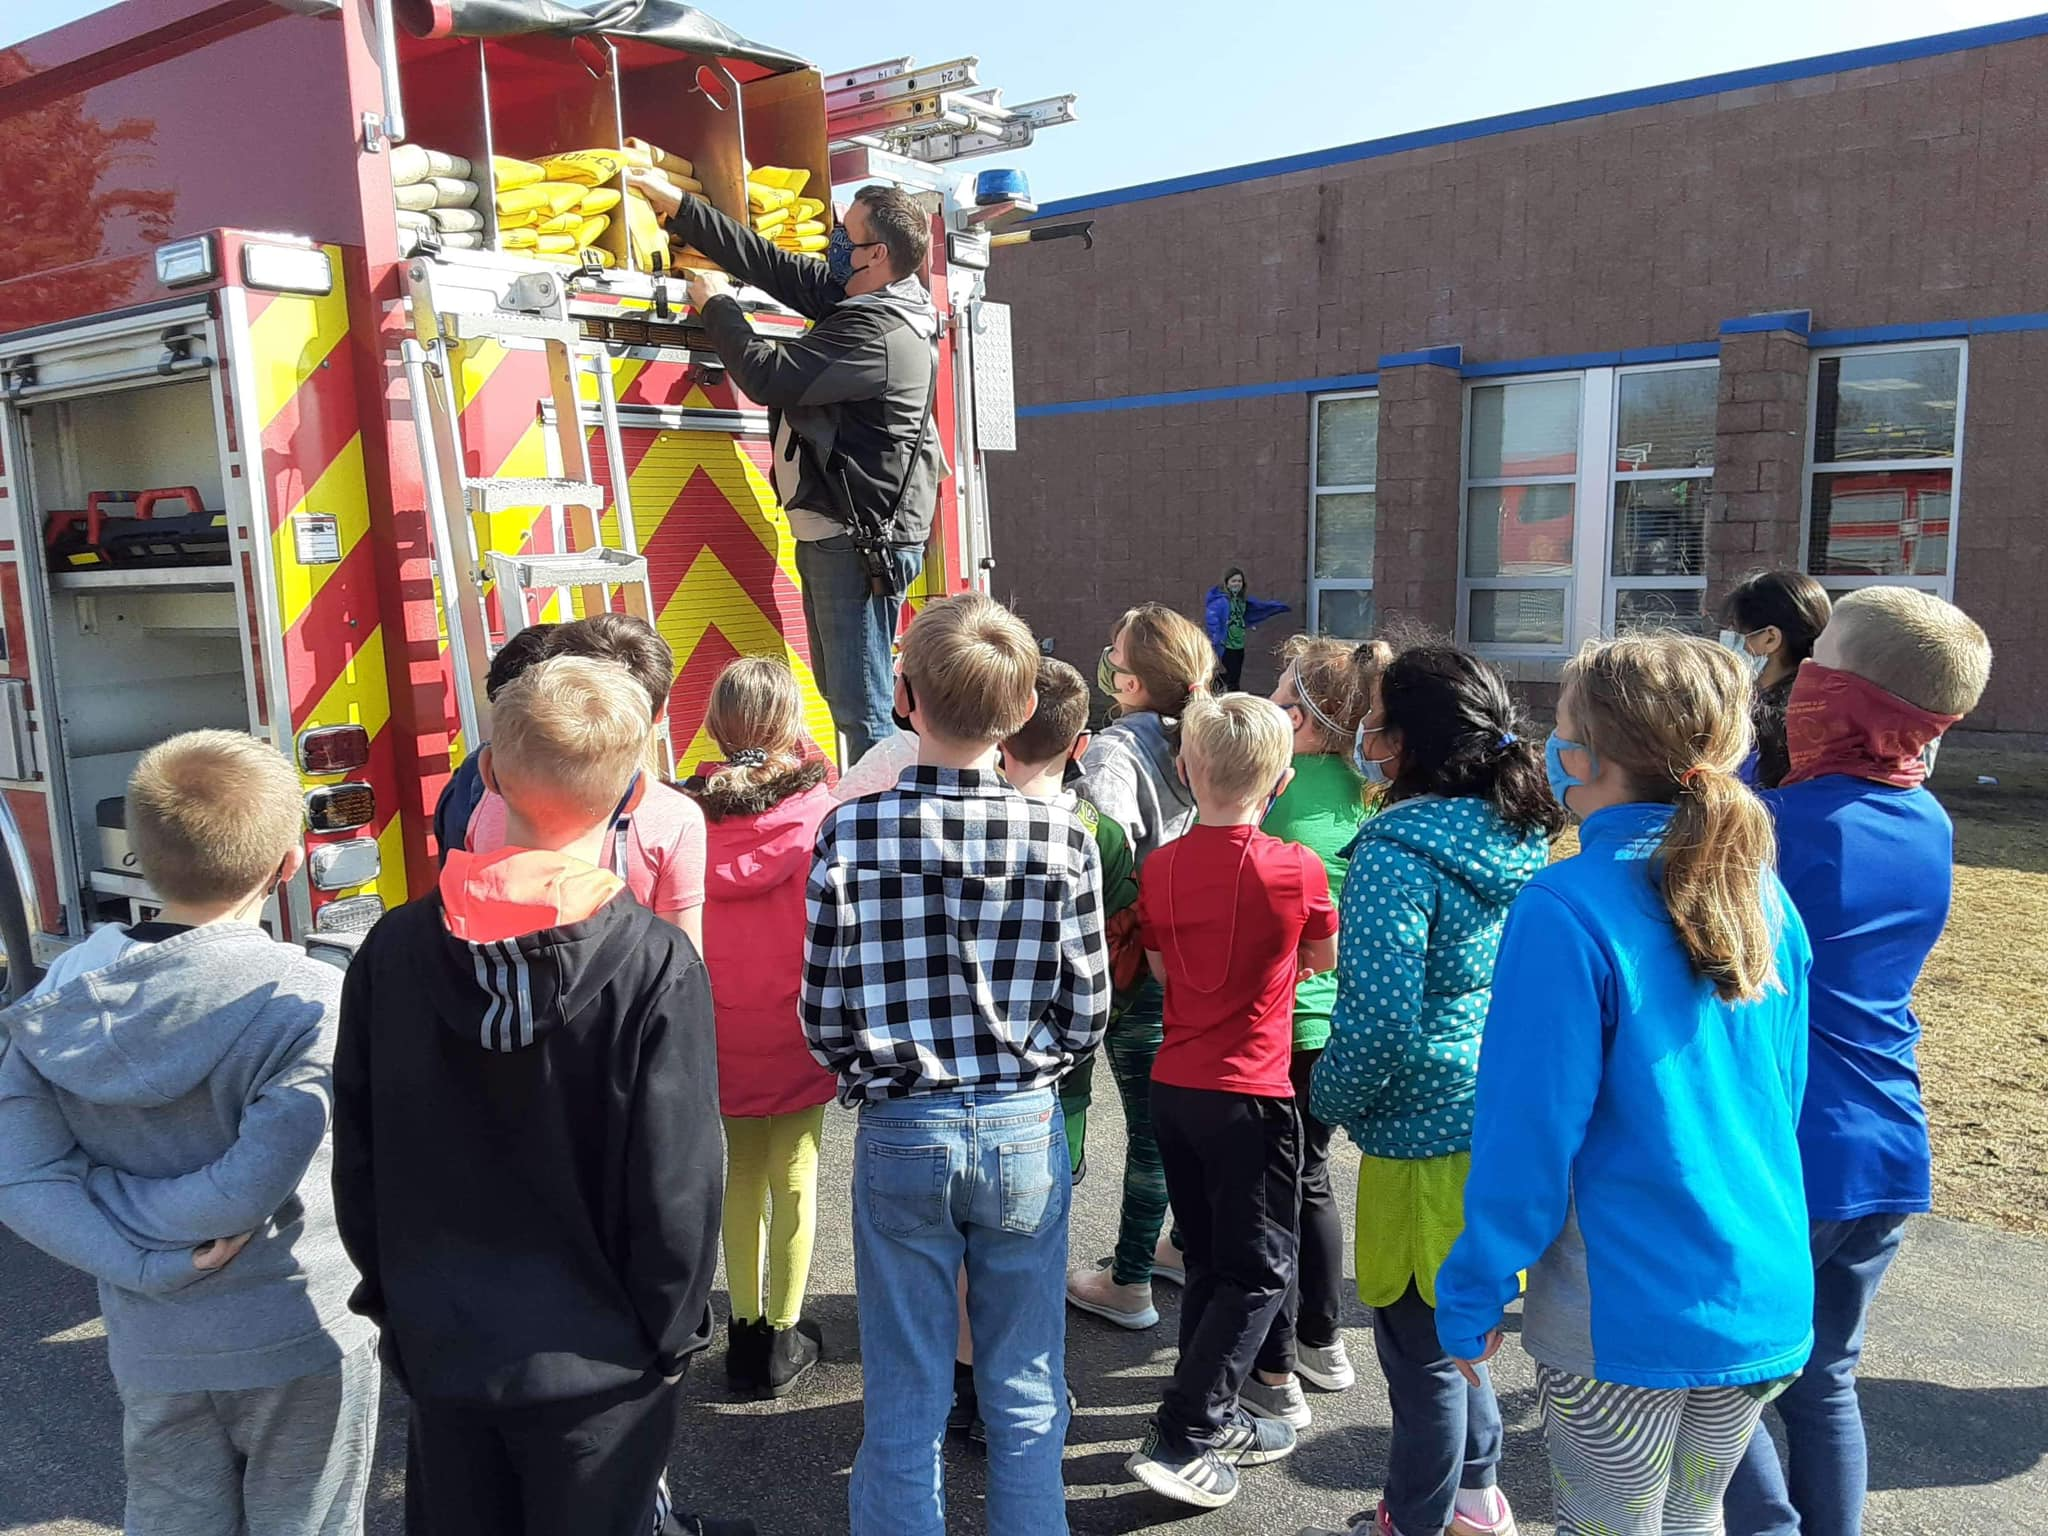 Students looking at someone on a firetruck